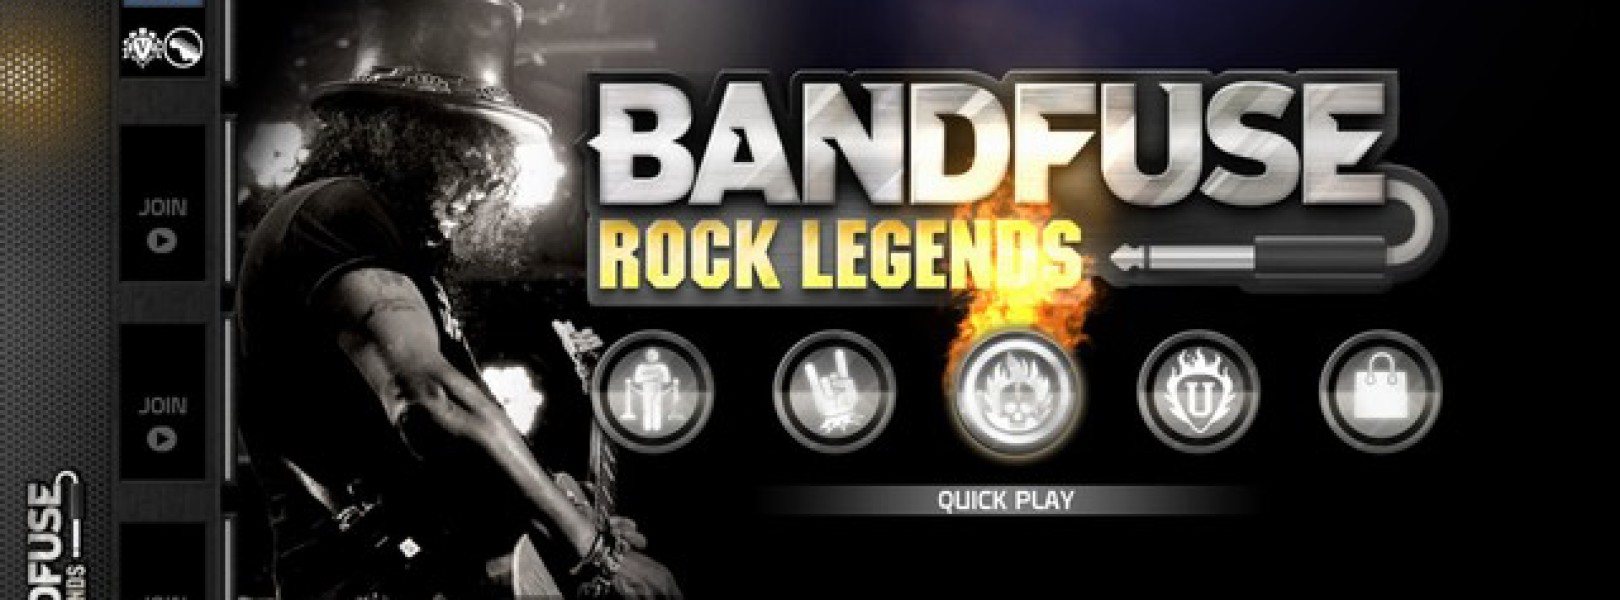 hight resolution of bandfuse rock legends music game heading to xbox 360 this november